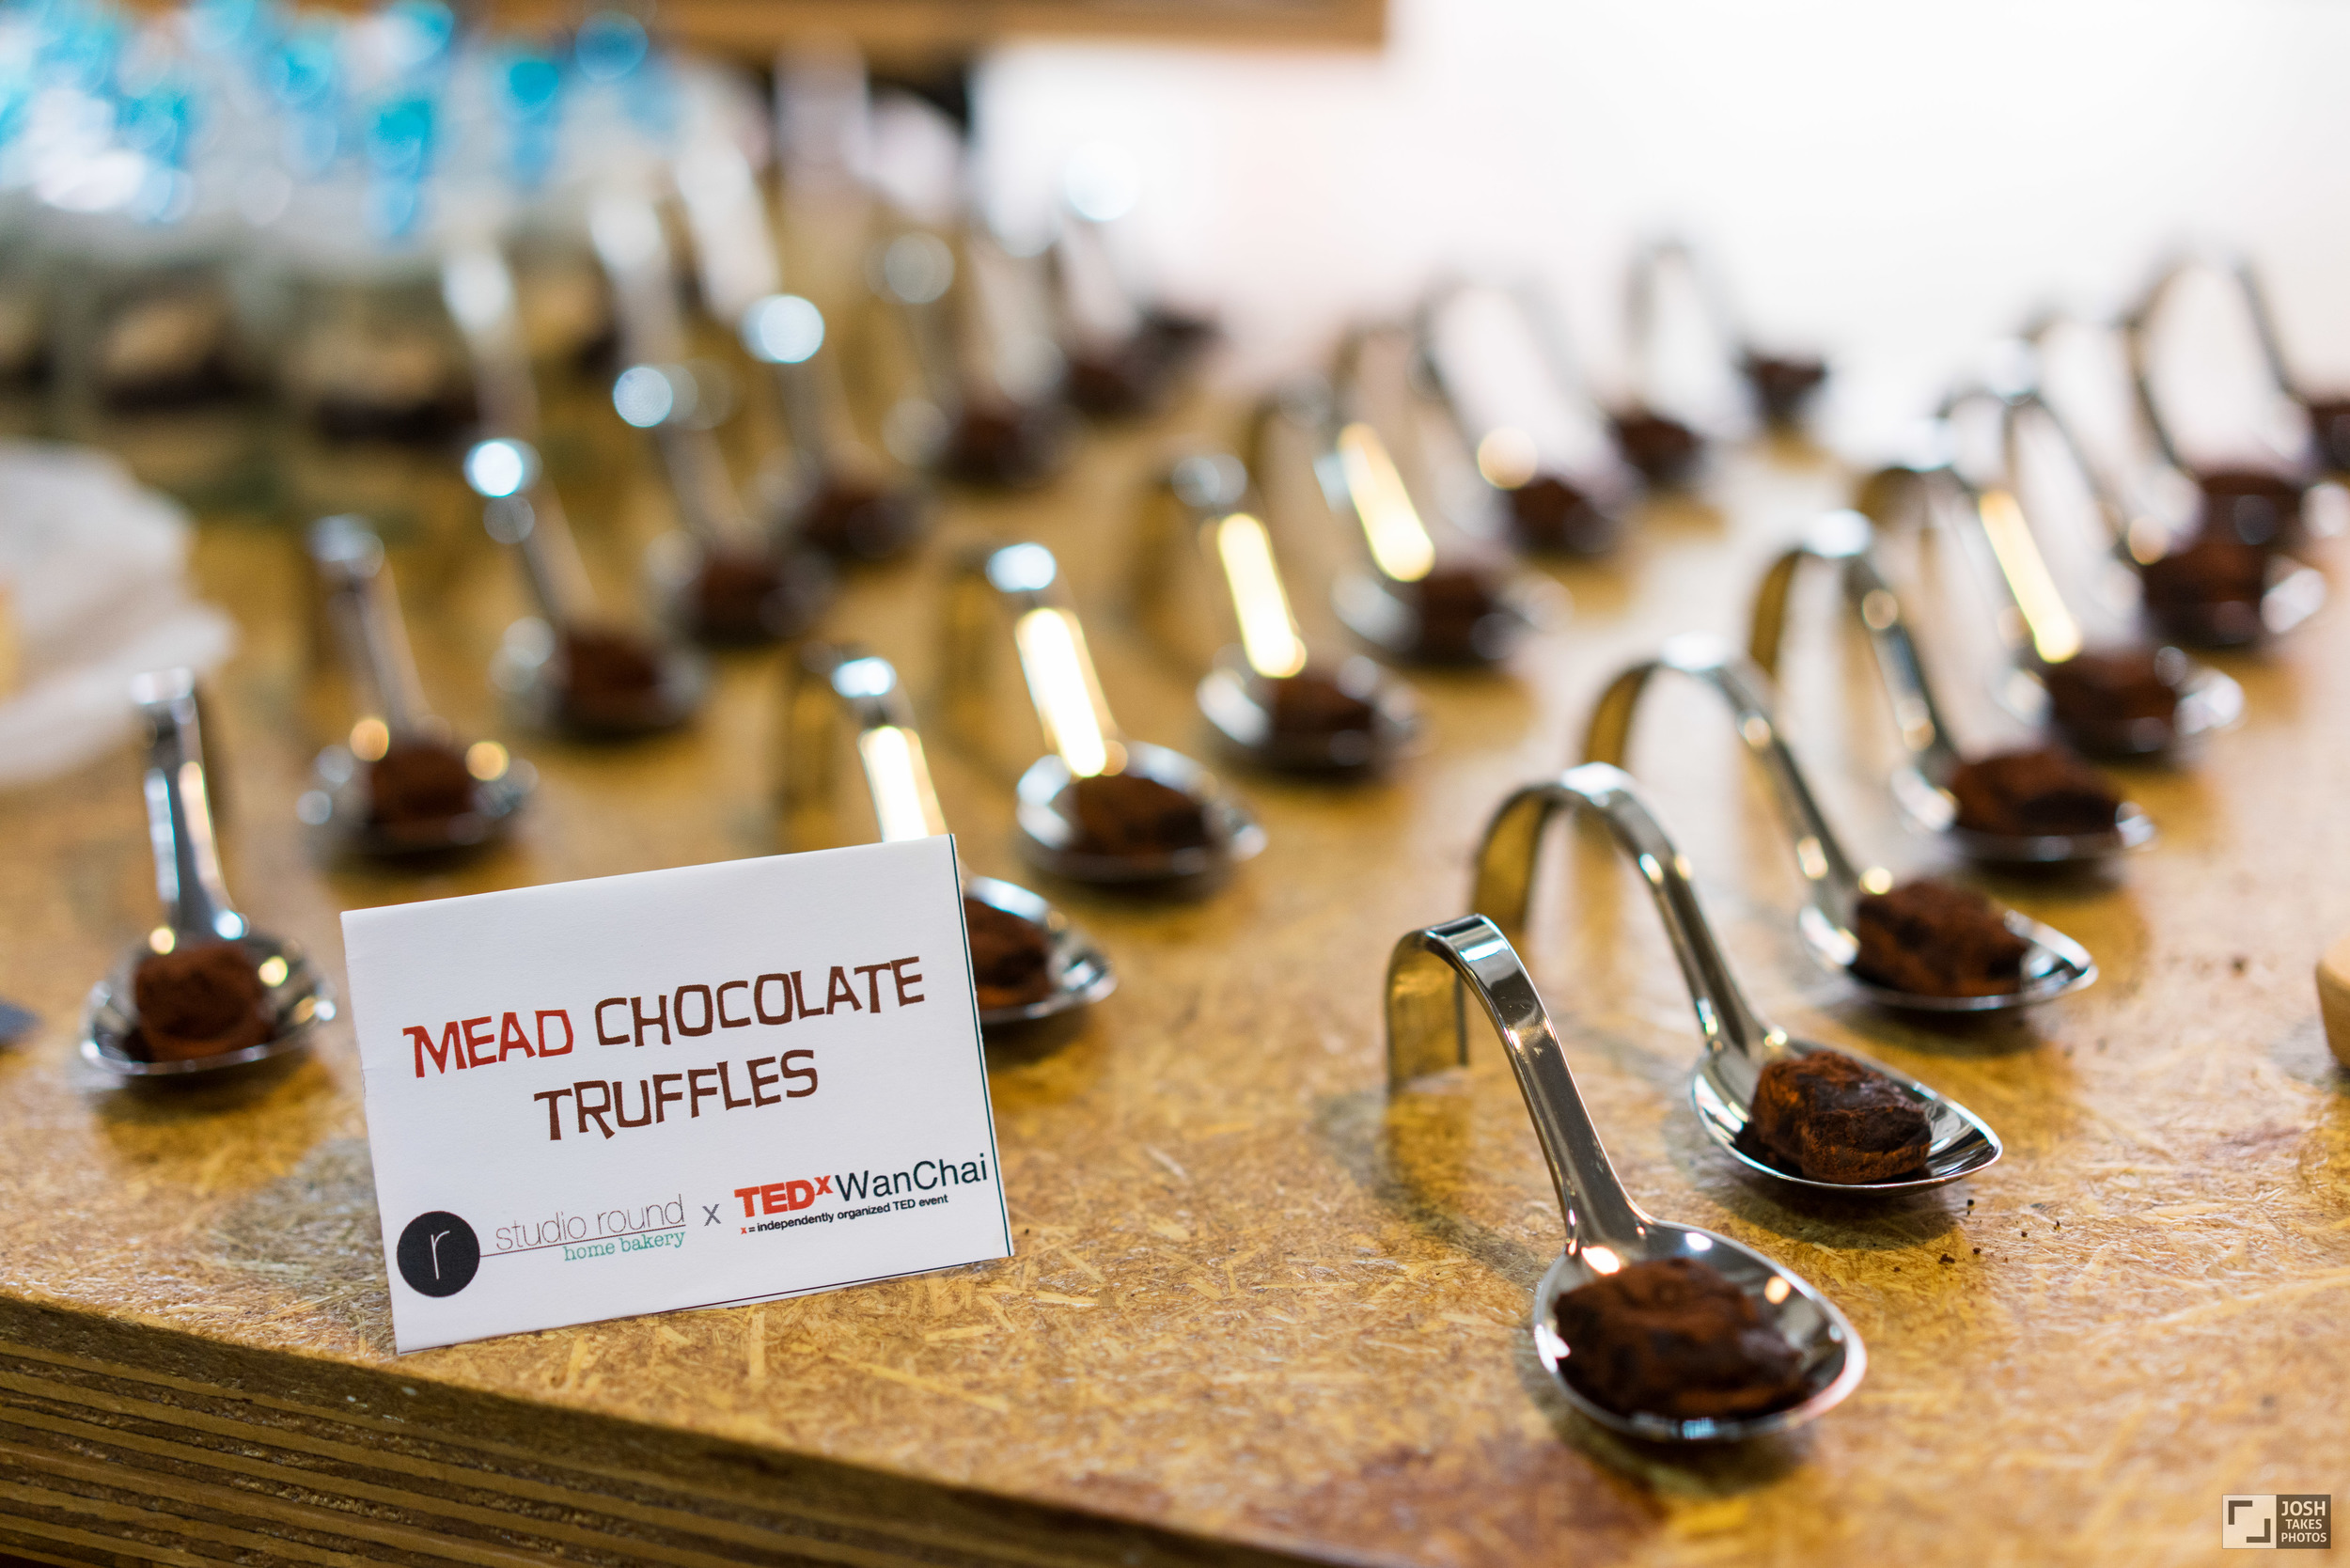 Mead Chocolate Truffles (with Intermiel Mead)   Decadent bite-size dark chocolate truffles infused with Intermiel Mead Rosee and dusted with cocoa powder  Featured at the TEDxWanChai Salon in March 2015